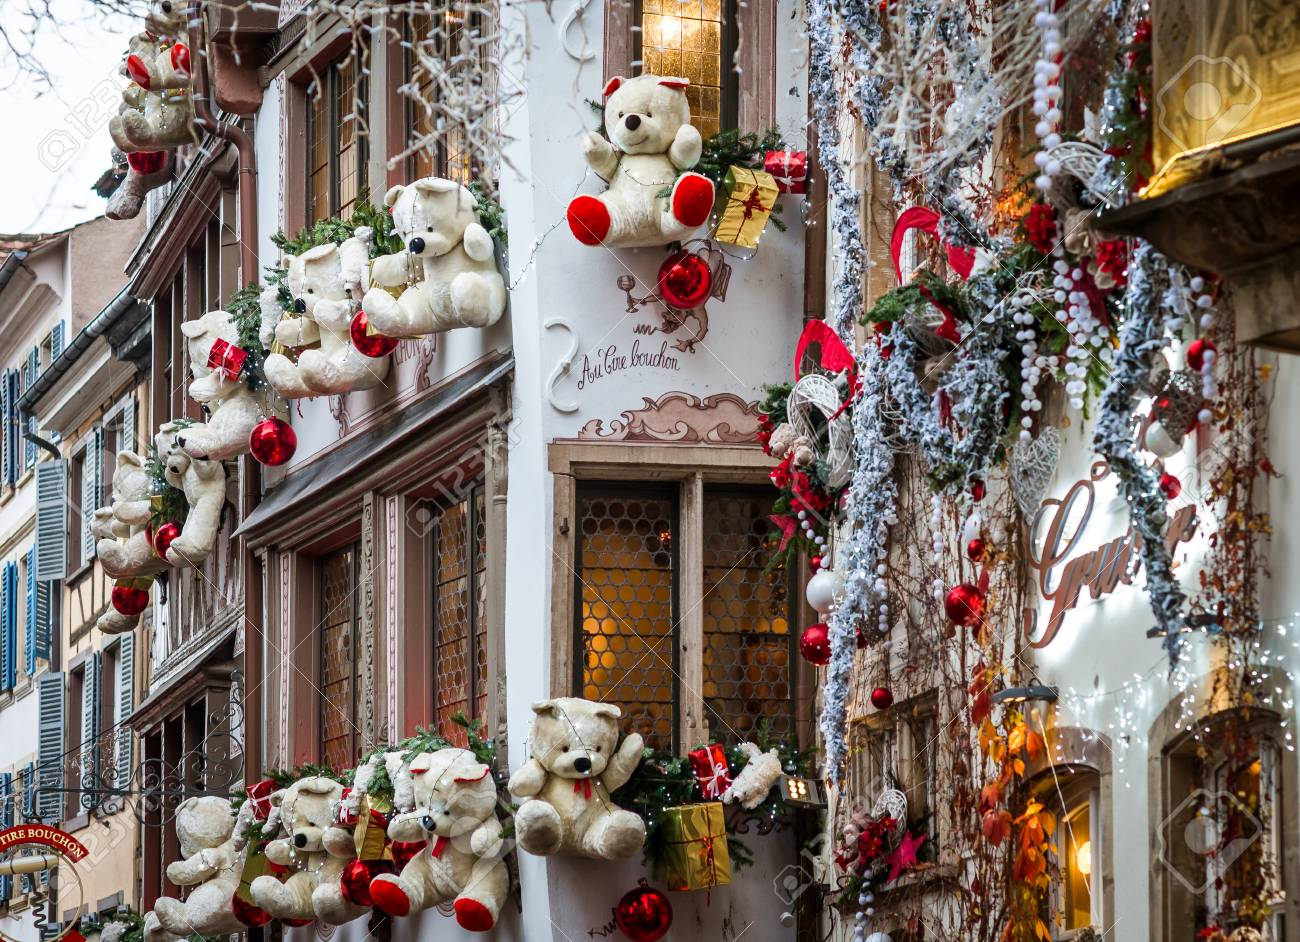 Christmas In France Decorations.Outdoor Christmas Decoration In Strasbourg Alsace France